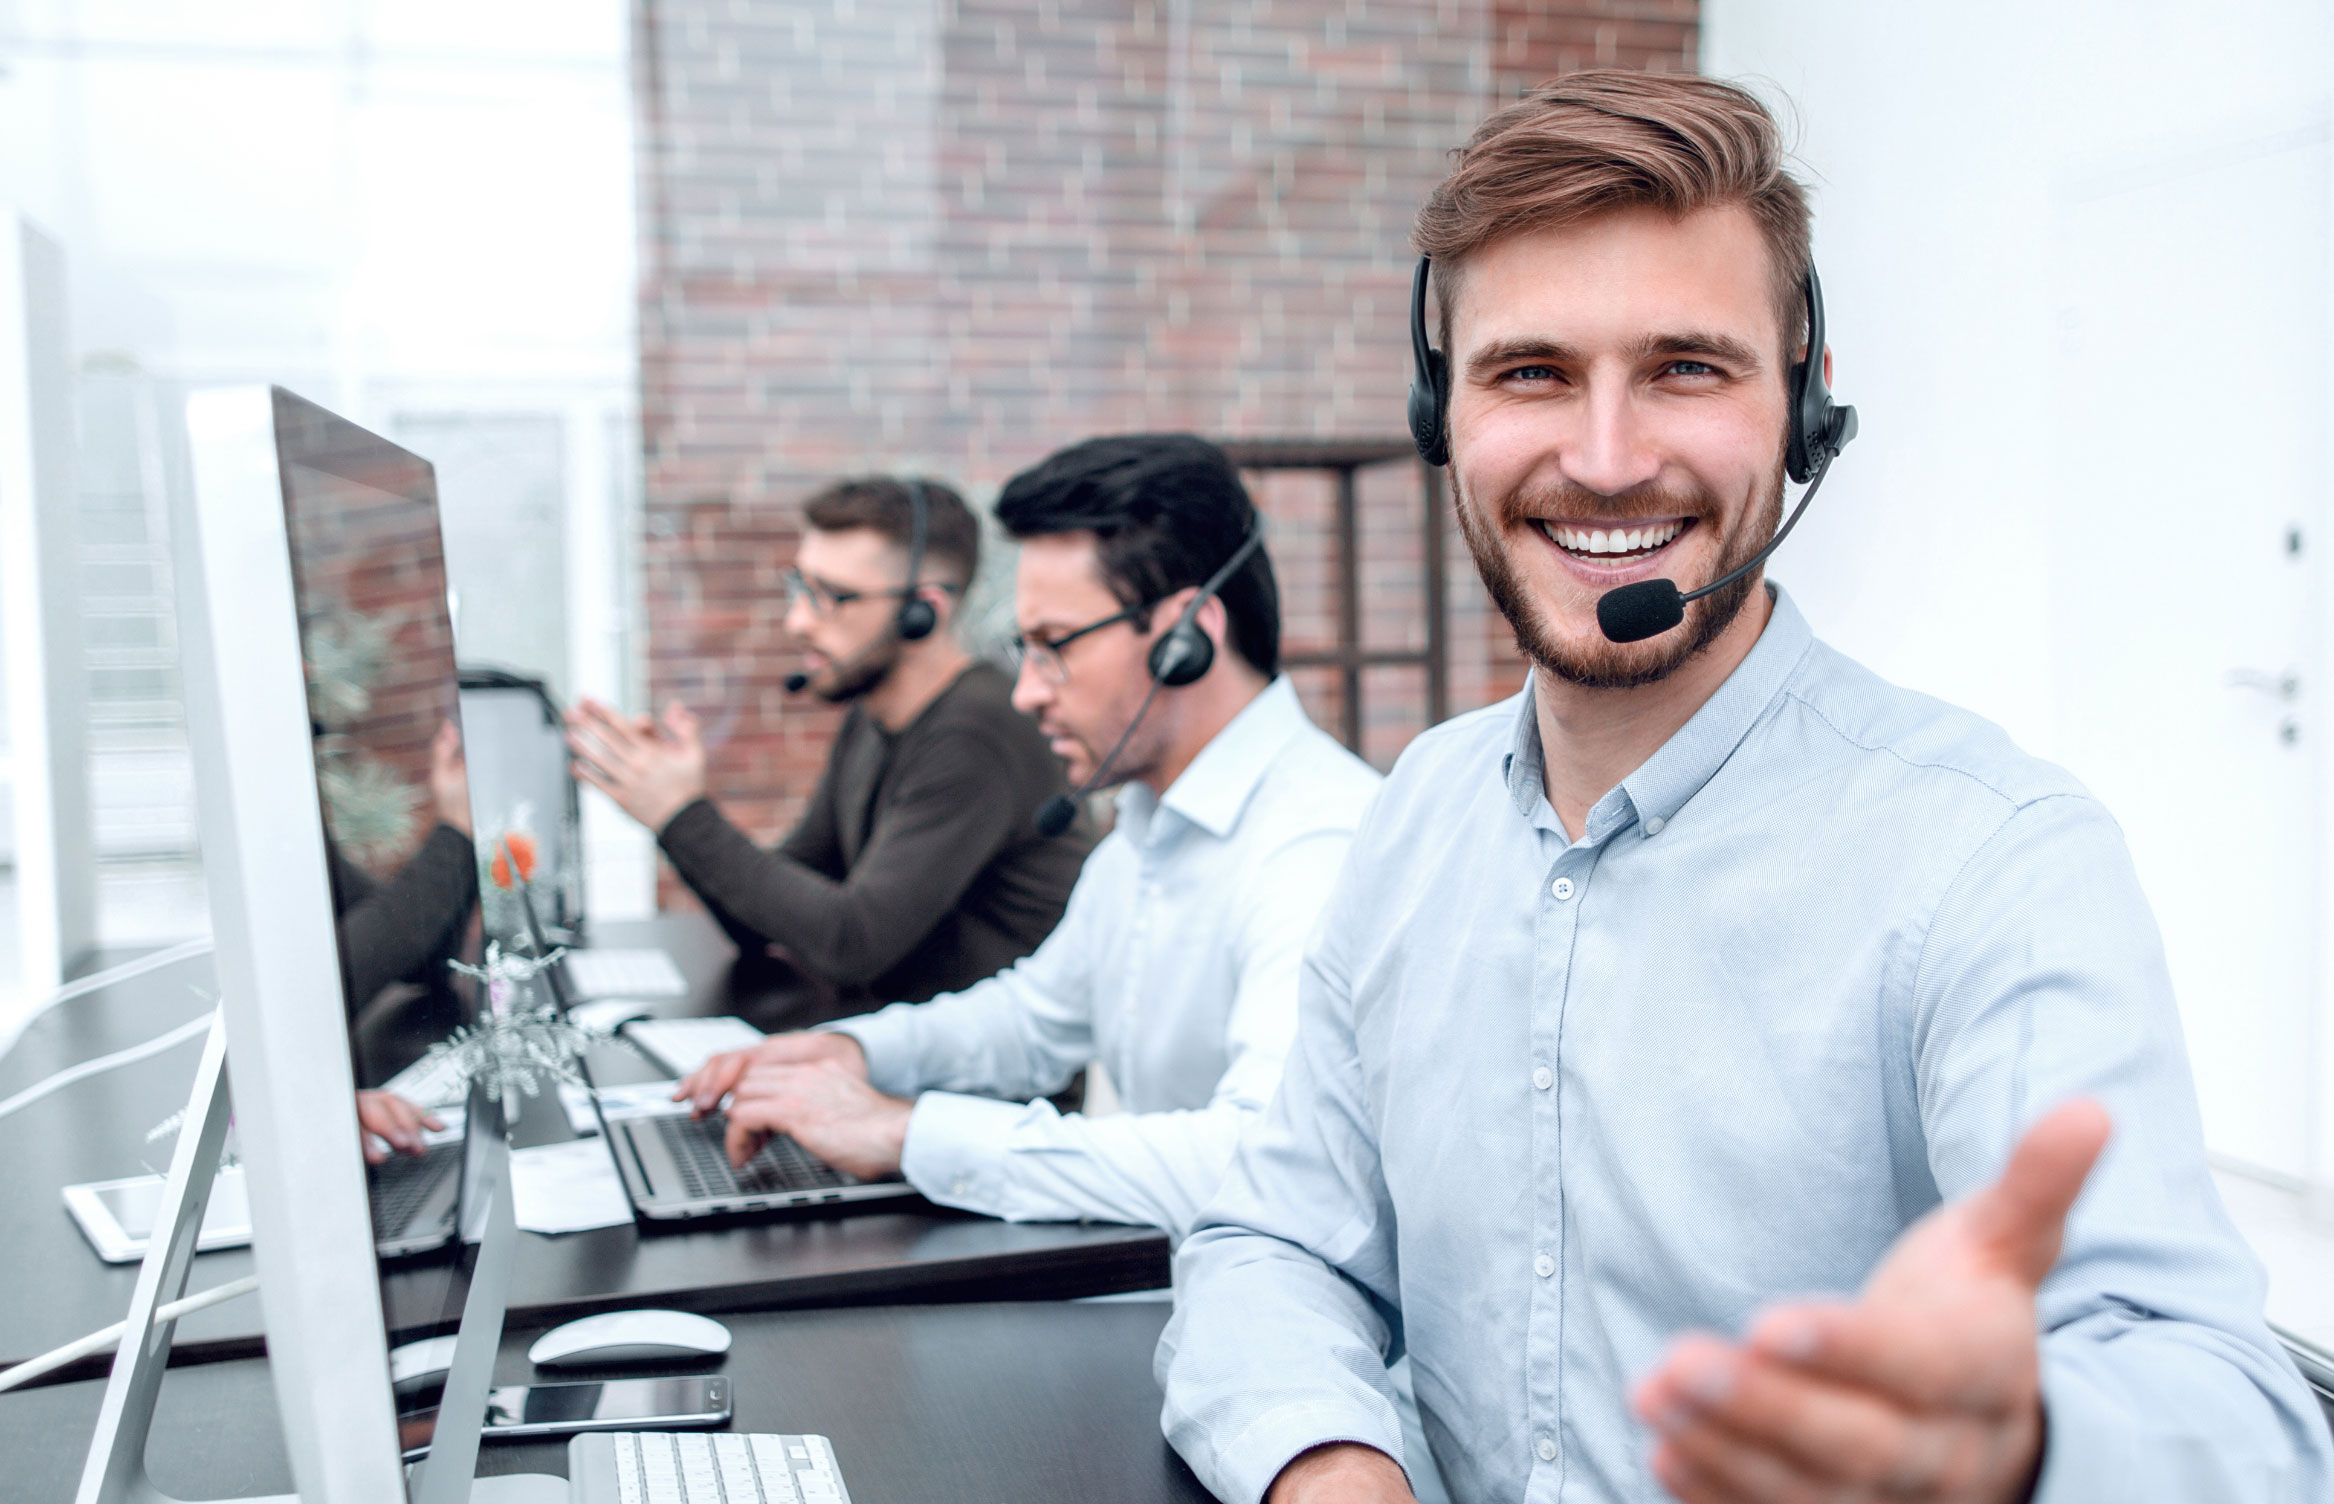 Contact center by Zisson smiling man